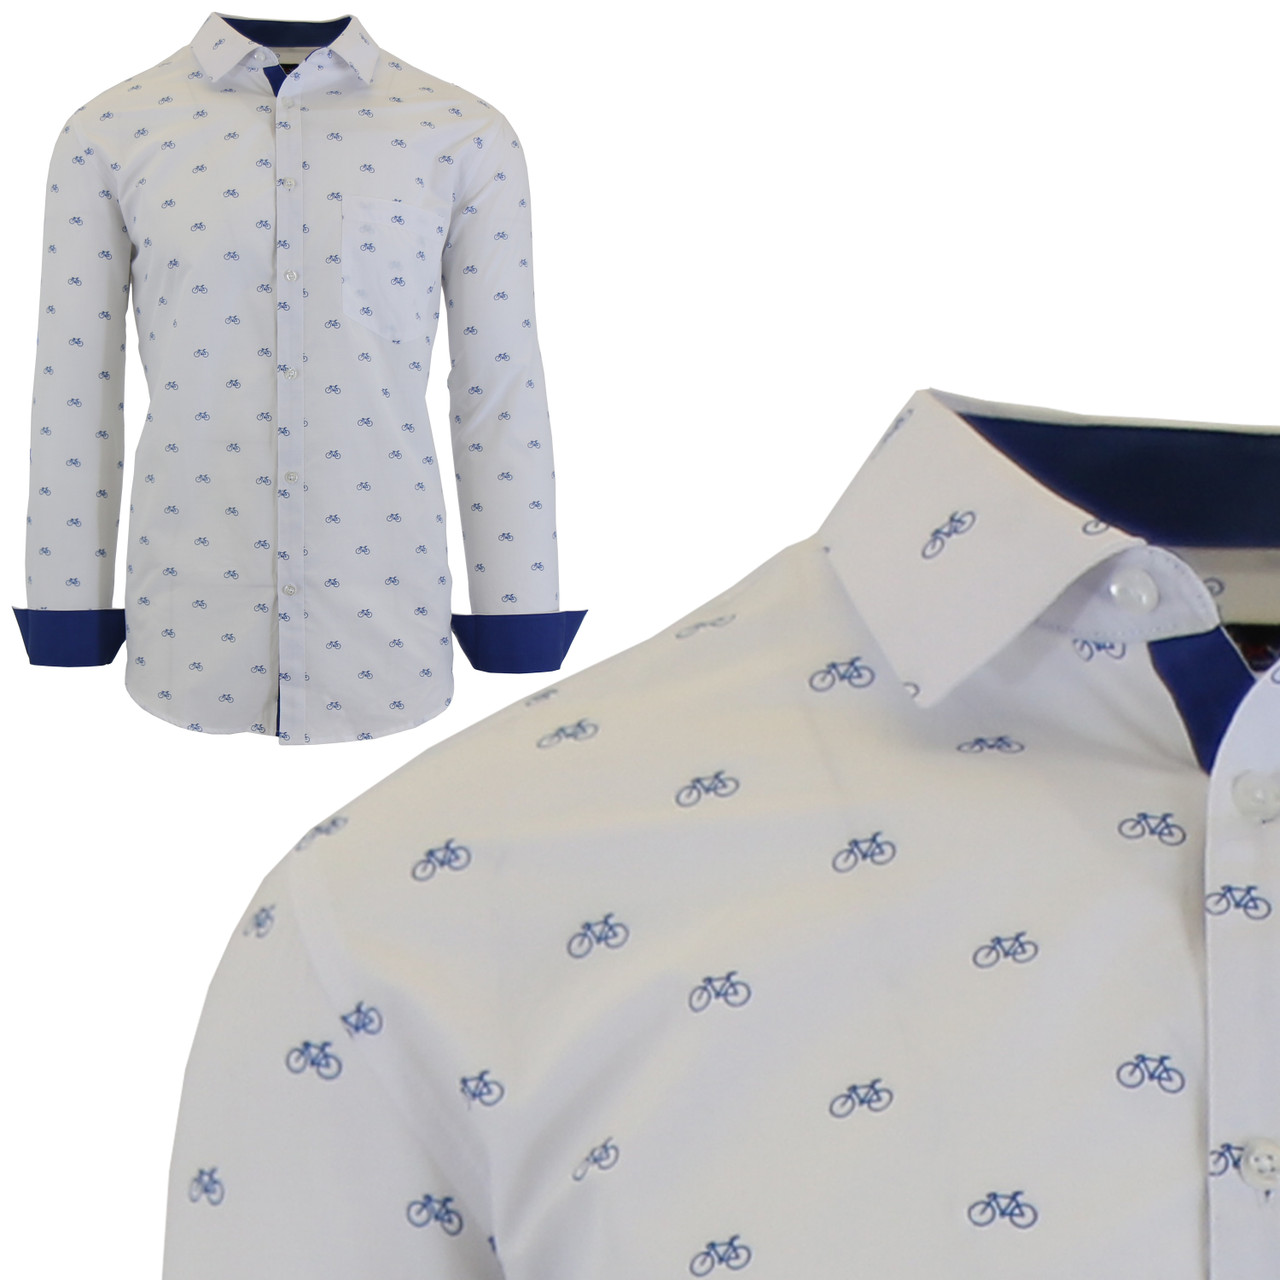 Men's Long Sleeve Printed Dress Shirts With Chest Pocket